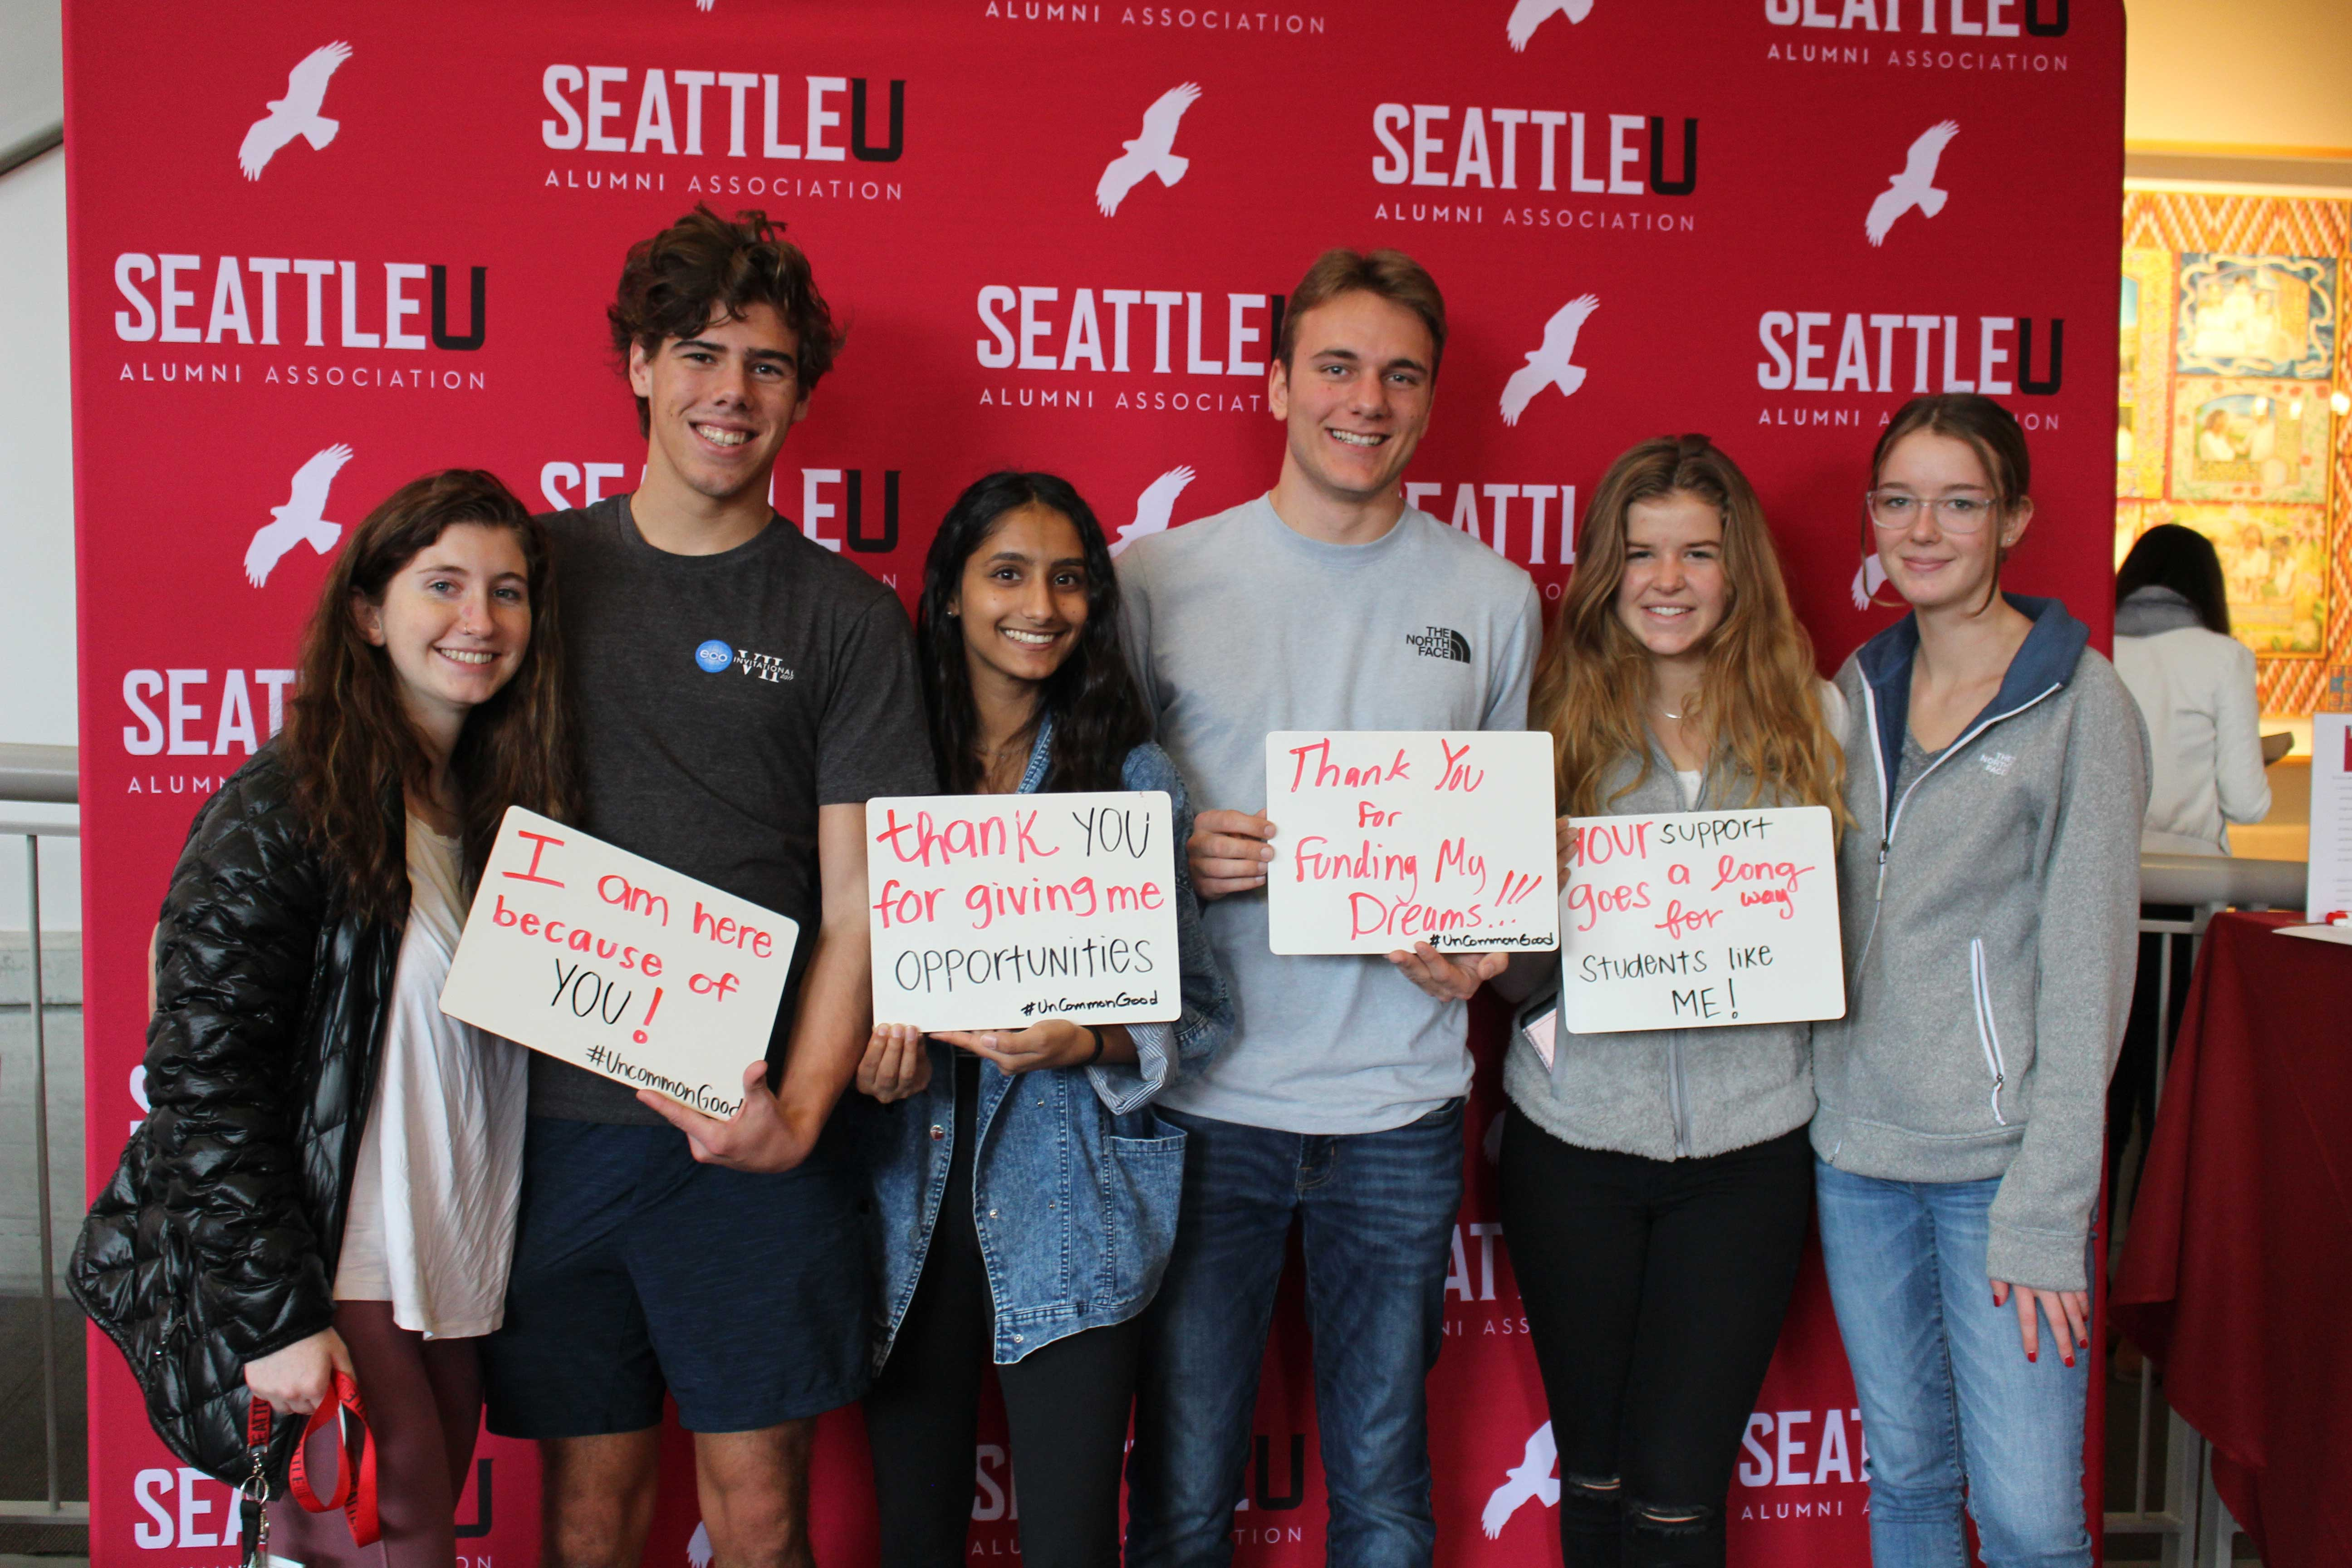 Thankful students holding signs at a photobooth